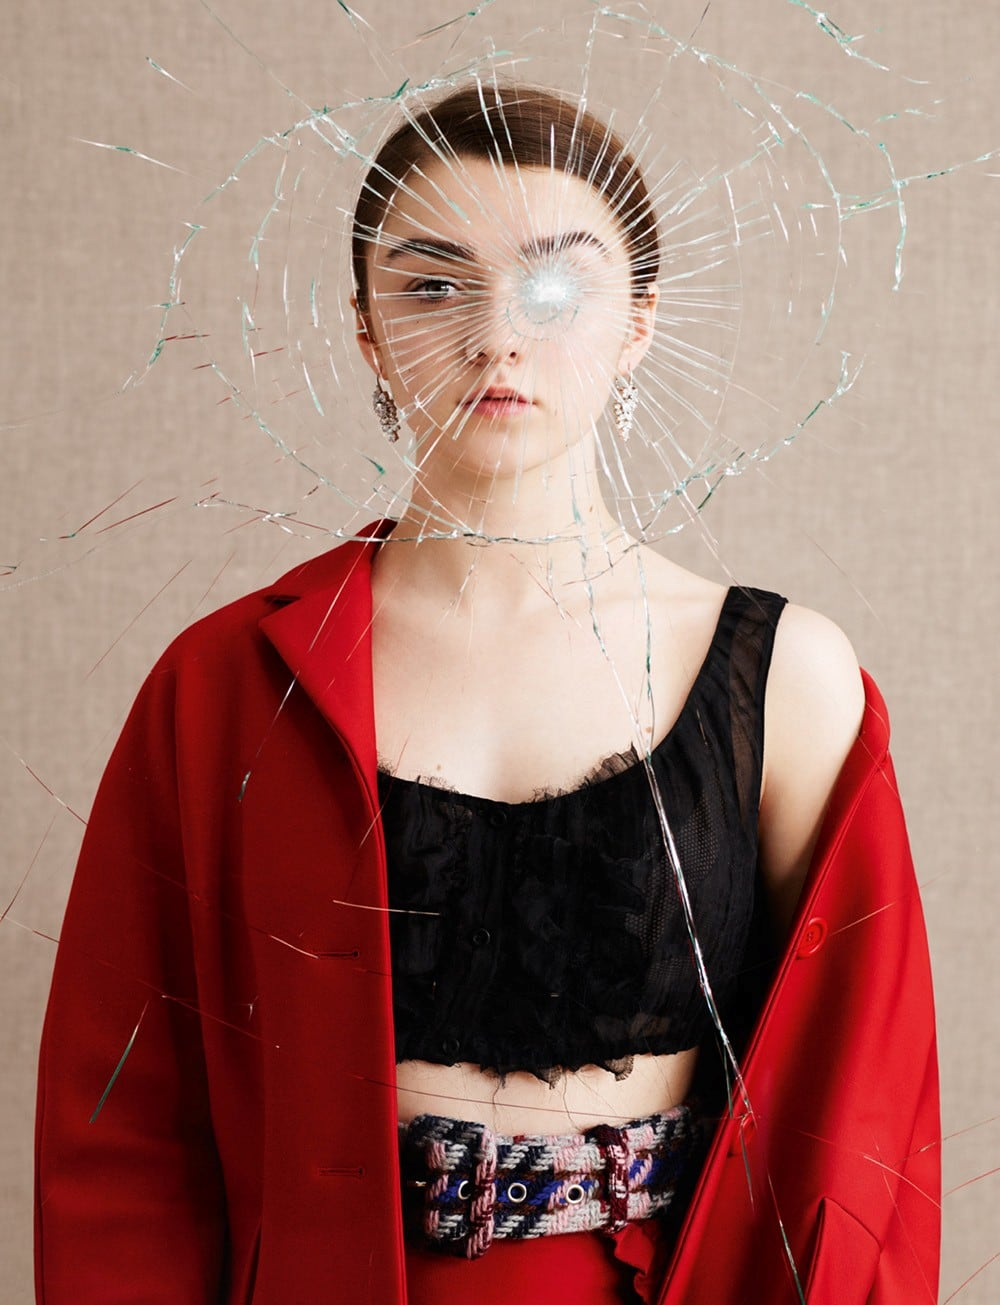 Maisie-Williams-Dazed-Confused-Magazine-2015-4